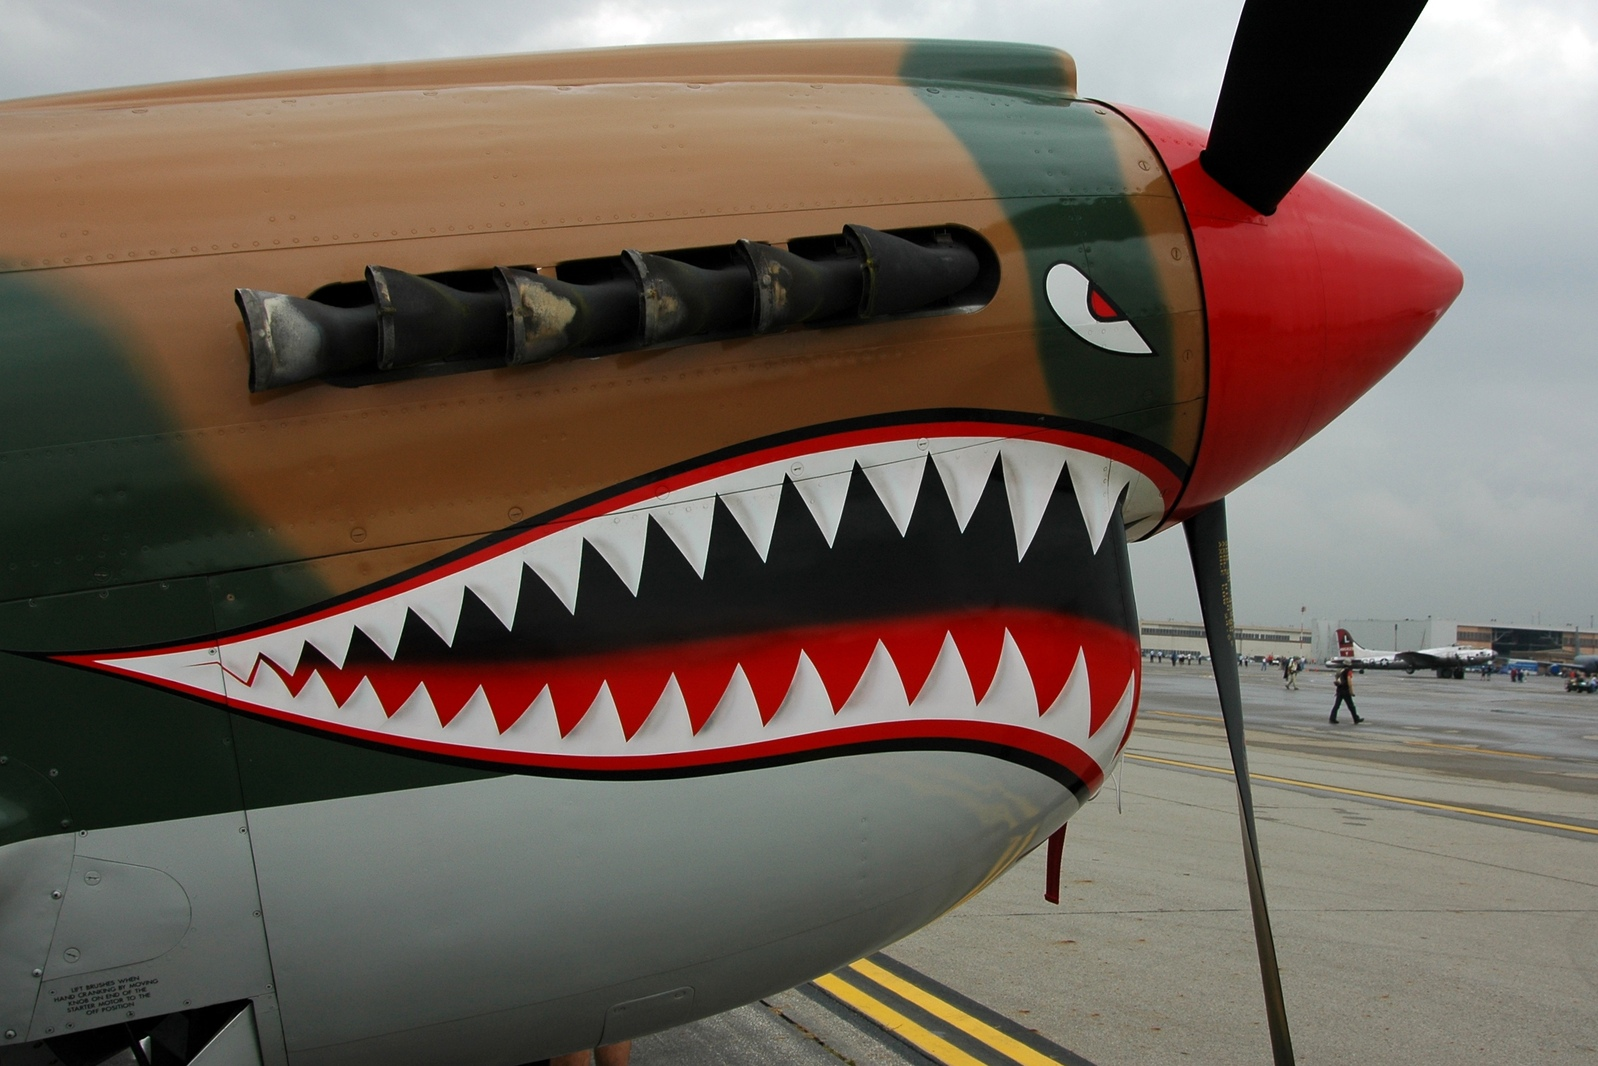 Plane Shark Mouth WW2 http://forums.luxology.com/topic.aspx?f=9&t=49831&page=2